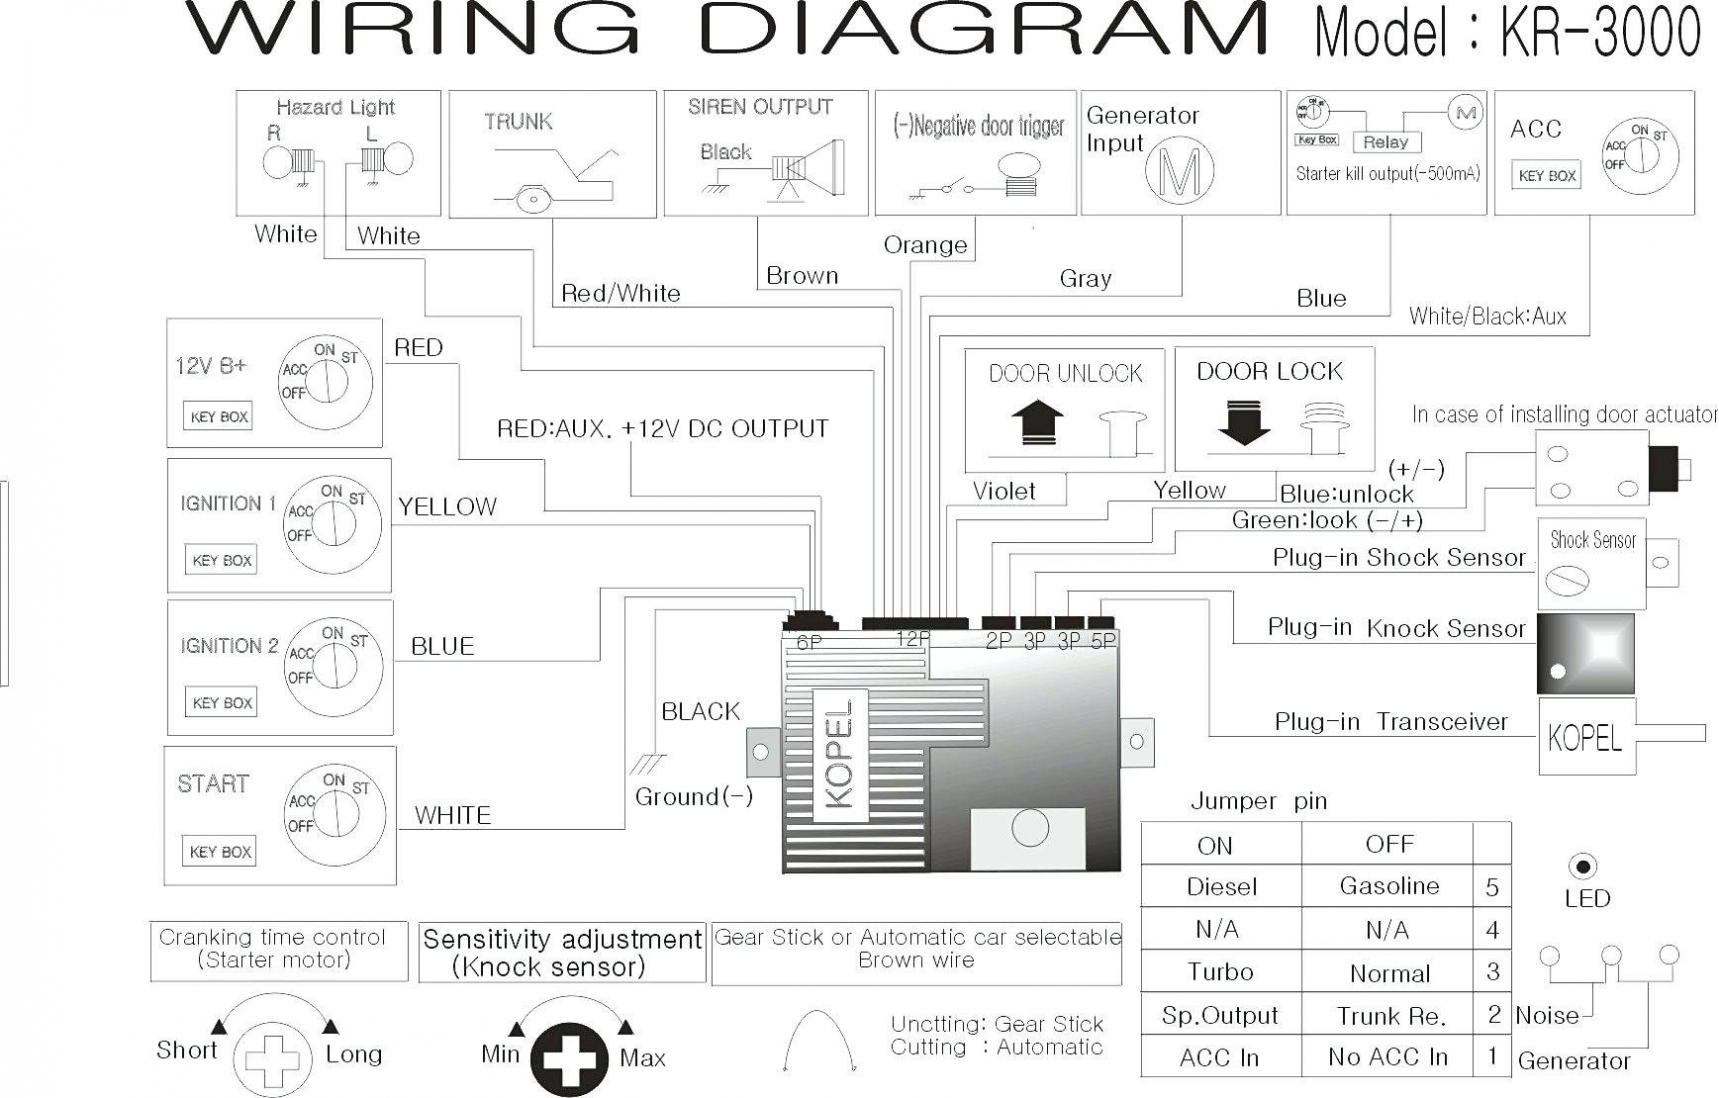 Pioneer Avh 200Bt Wiring Diagram | Best Wiring Library - Pioneer Avh-200Bt Wiring Diagram